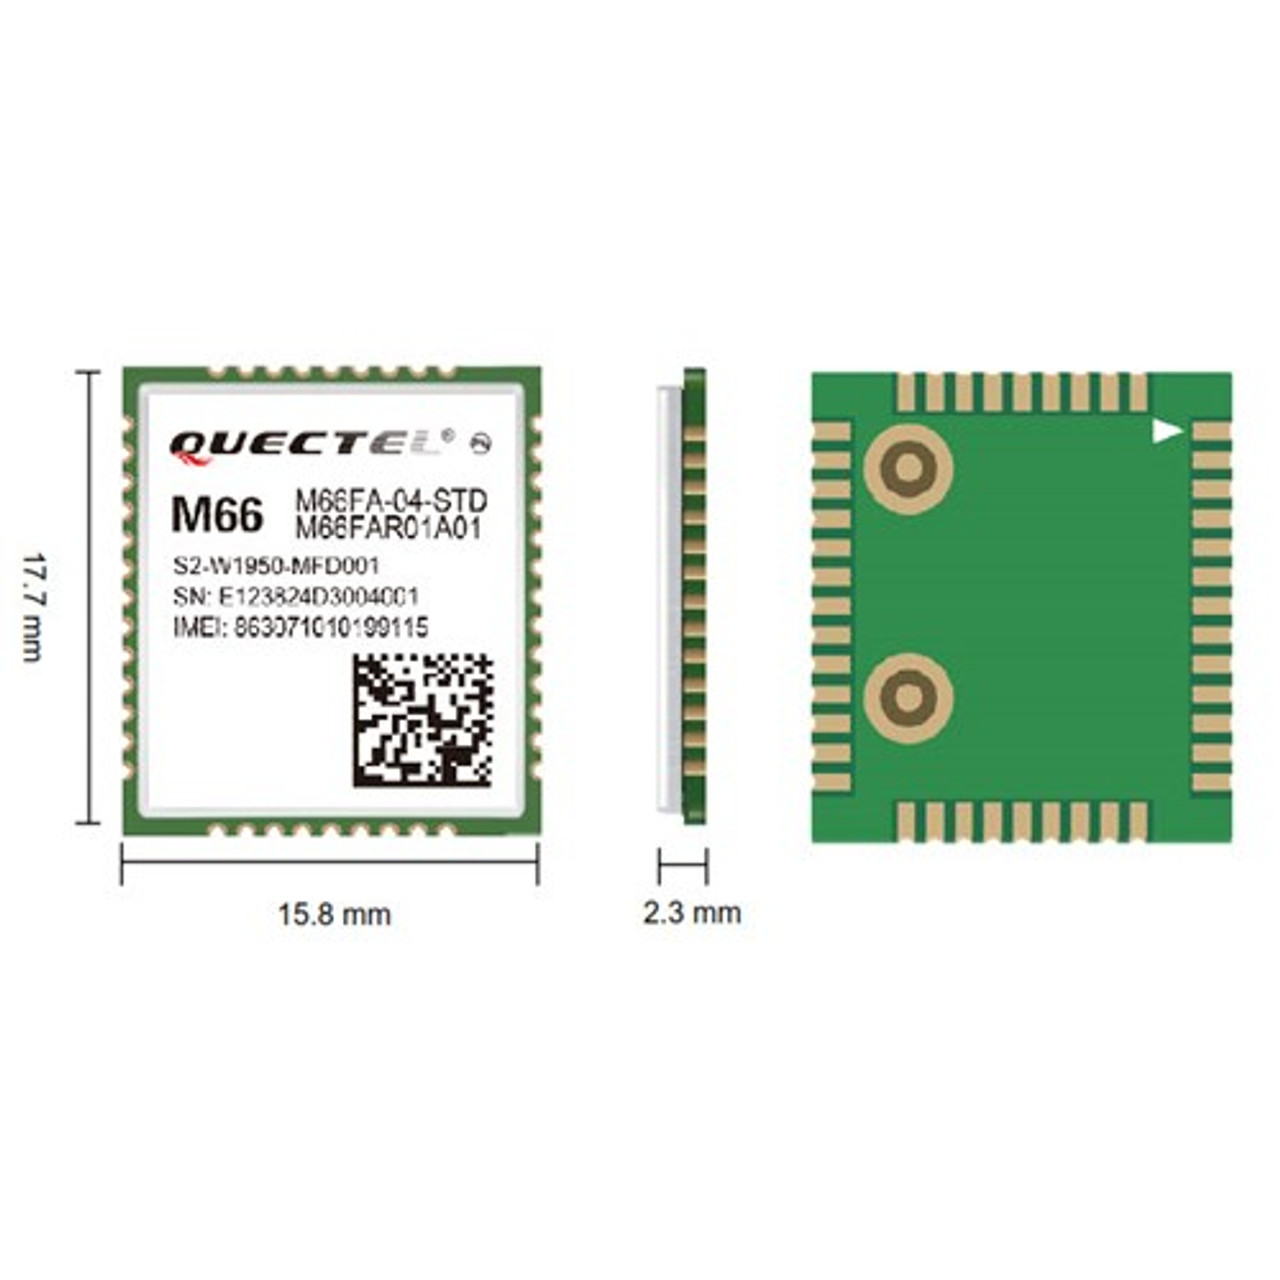 Quectel M66 R1 0 GSM/GPRS Module with Bluetooth and OpenCPU